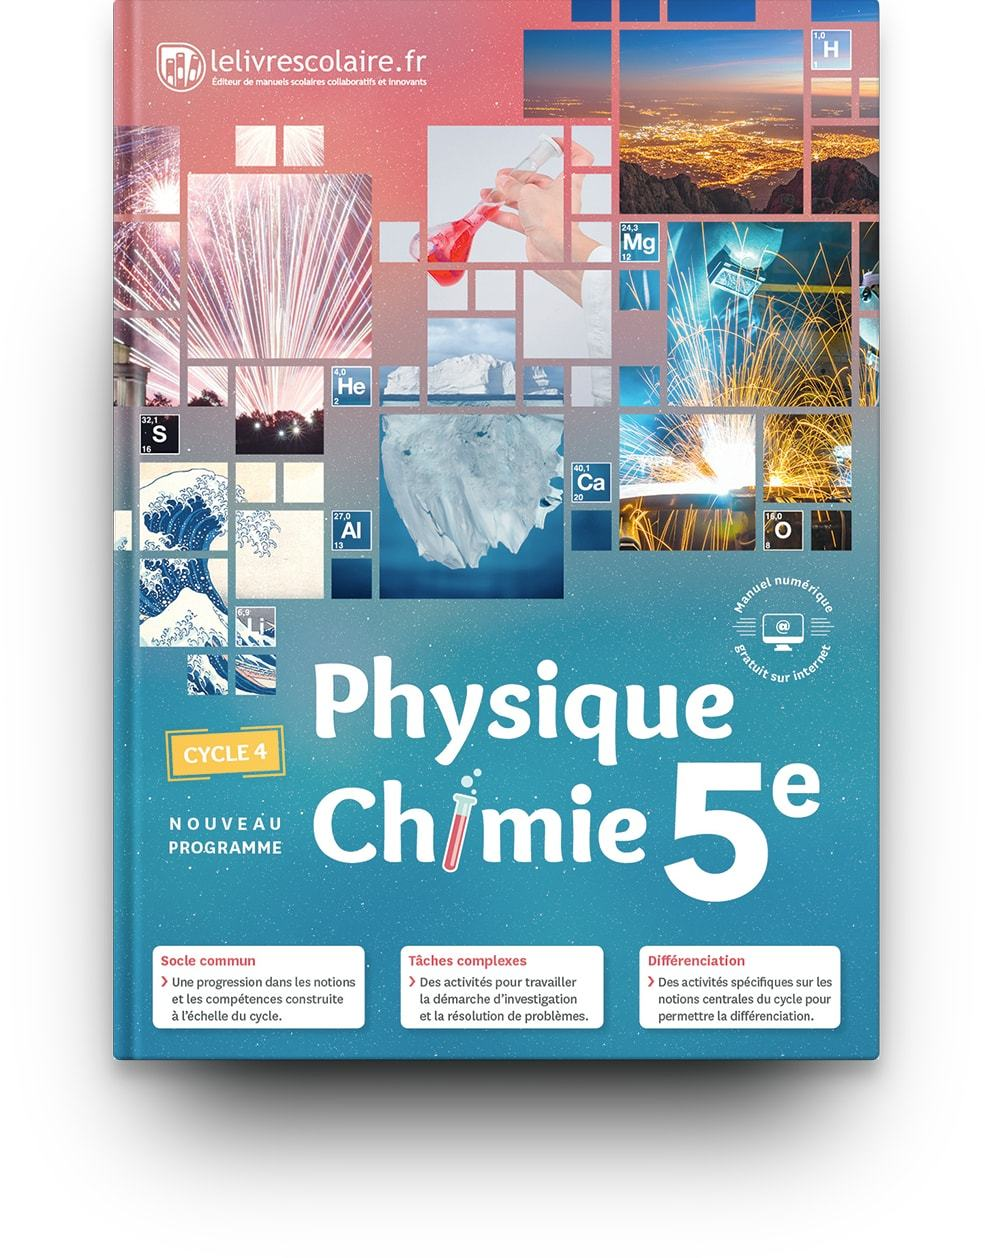 PHYSIQUE-CHIMIE 5E, EDITION 2017